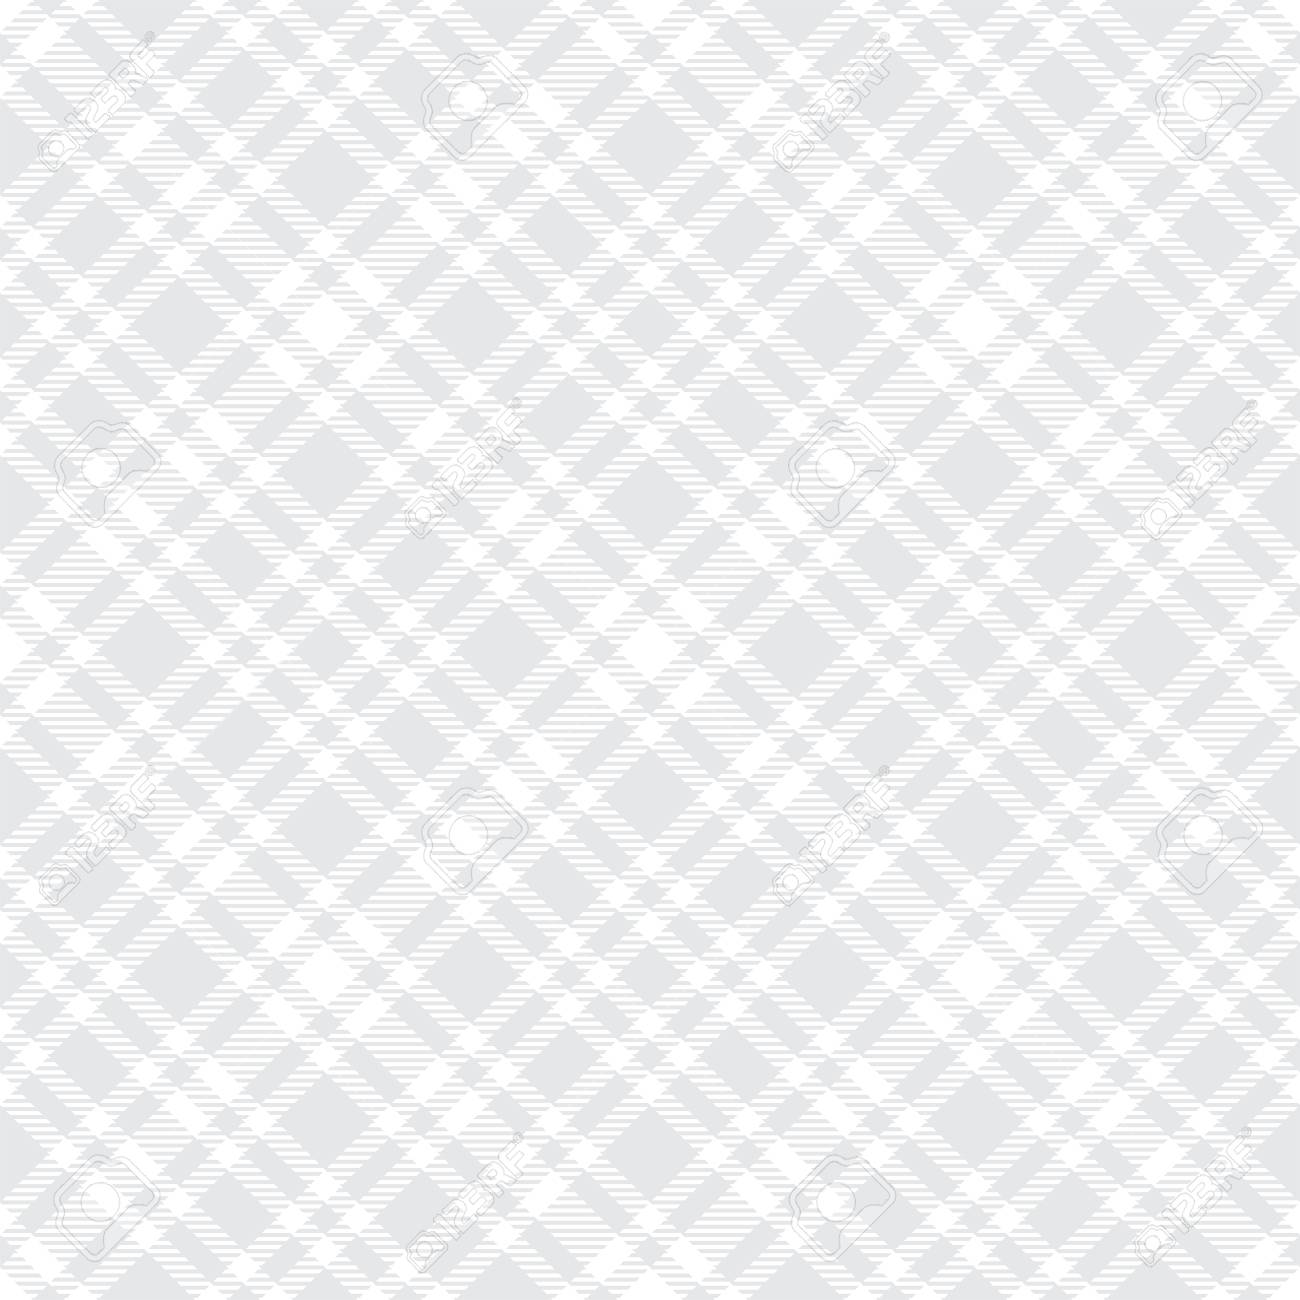 Tartan light gray seamless vector pattern. Checkered plaid texture. Geometrical simple square background for fabric textile cloth, clothing, shirts shorts dress blanket, wrapping design - 109760610